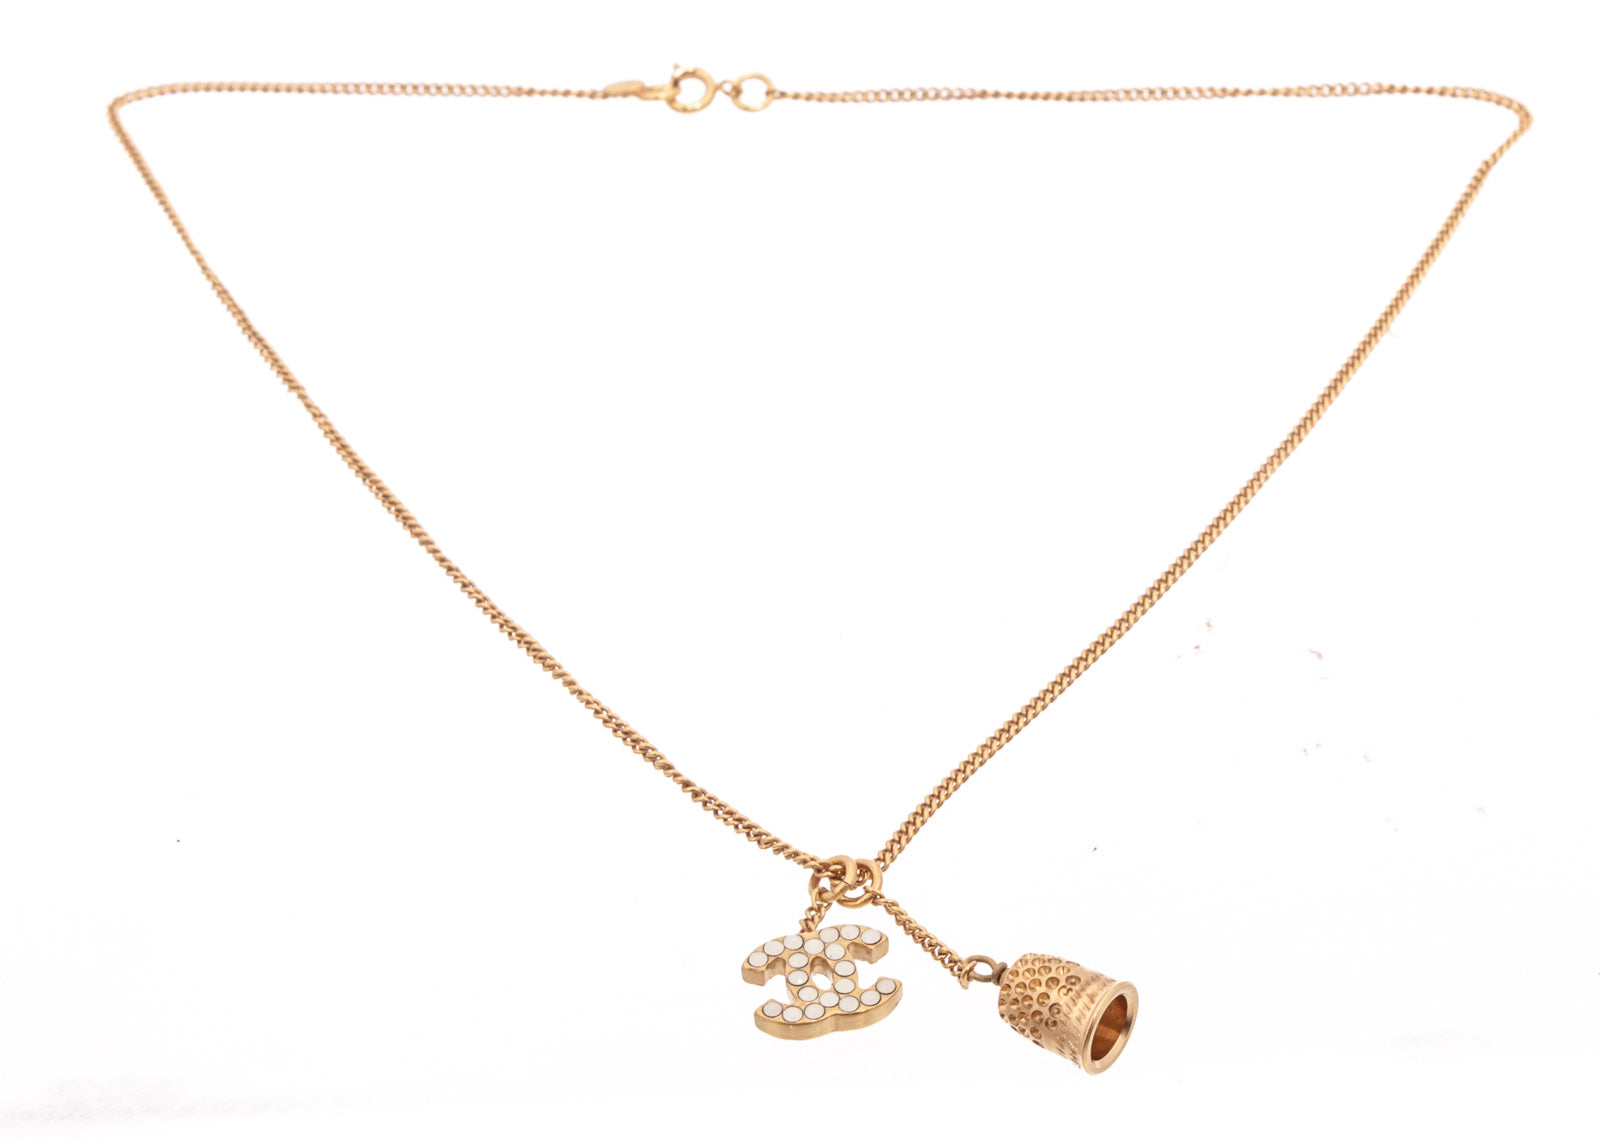 Chanel Gold Bell Necklace